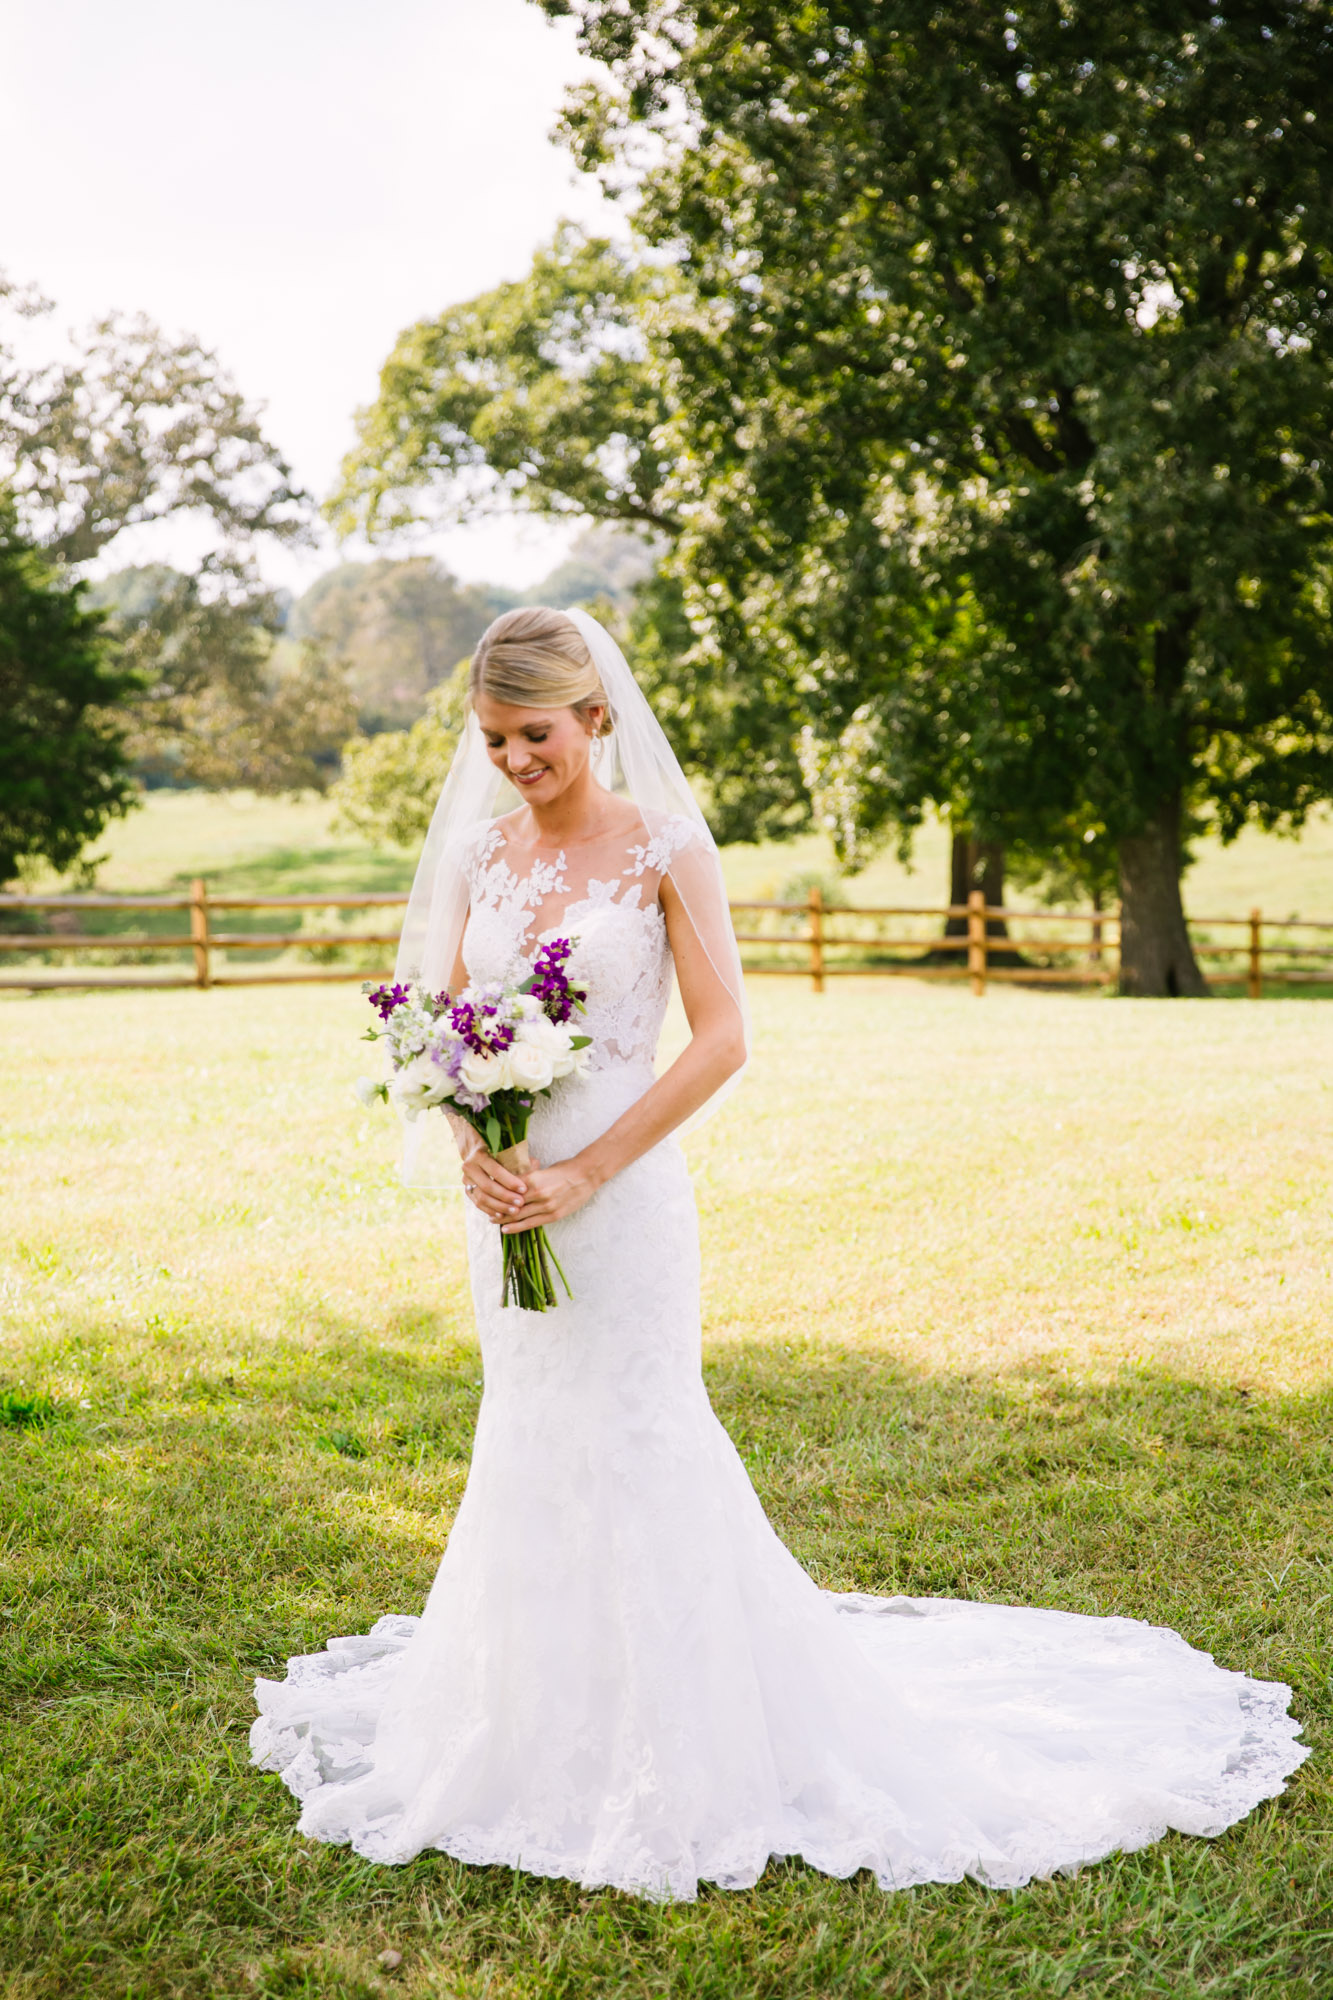 Waynesville, NC Wedding Photography | Bridal Photo